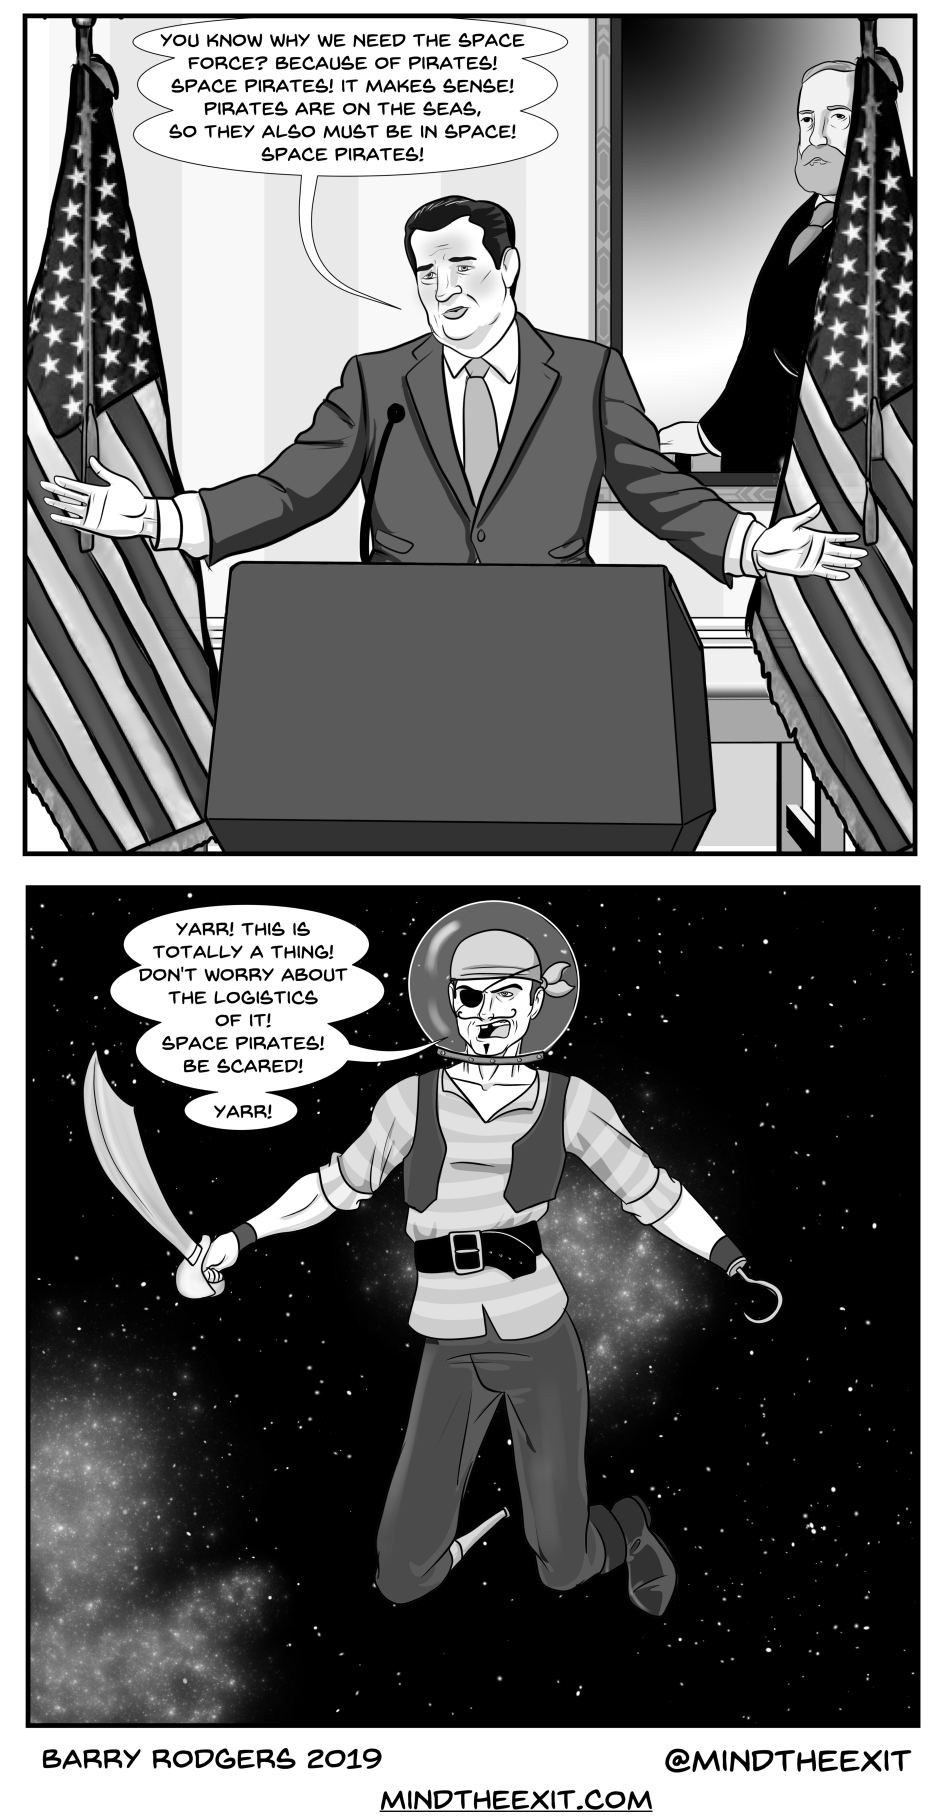 Space Pirates1